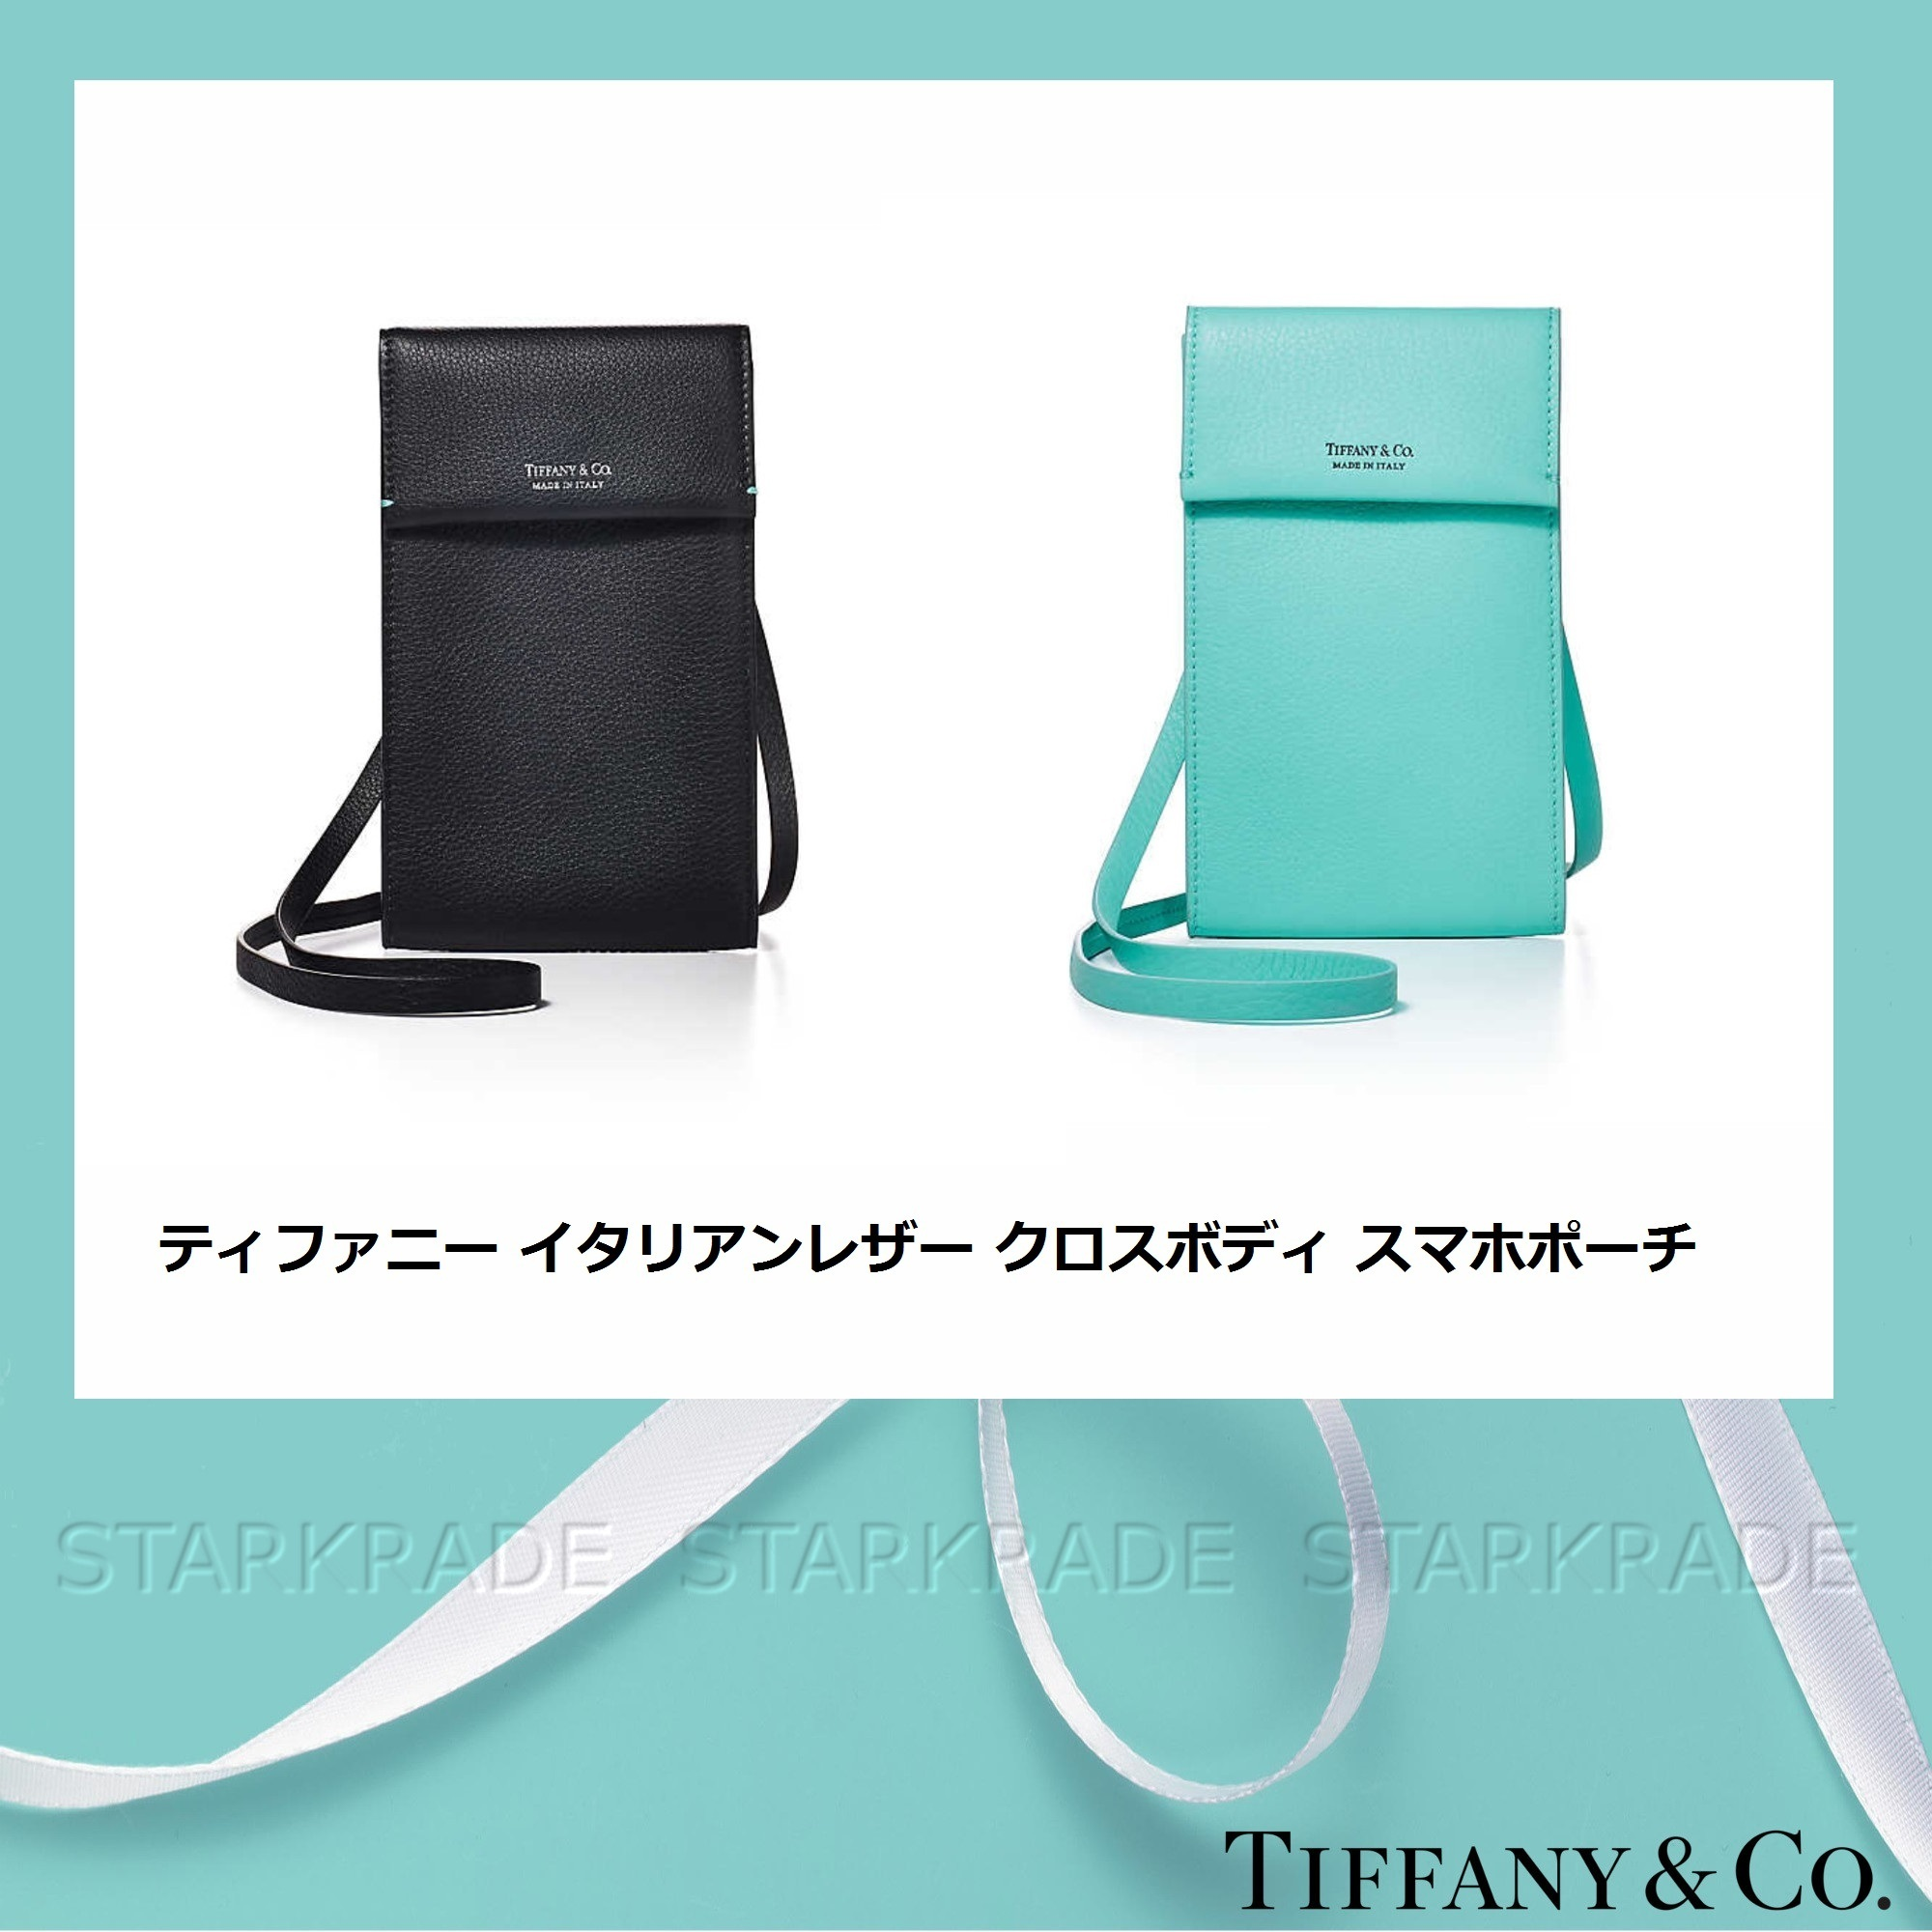 Tiffany Co 2019 Ss Bags Crossbody Phone Pouch